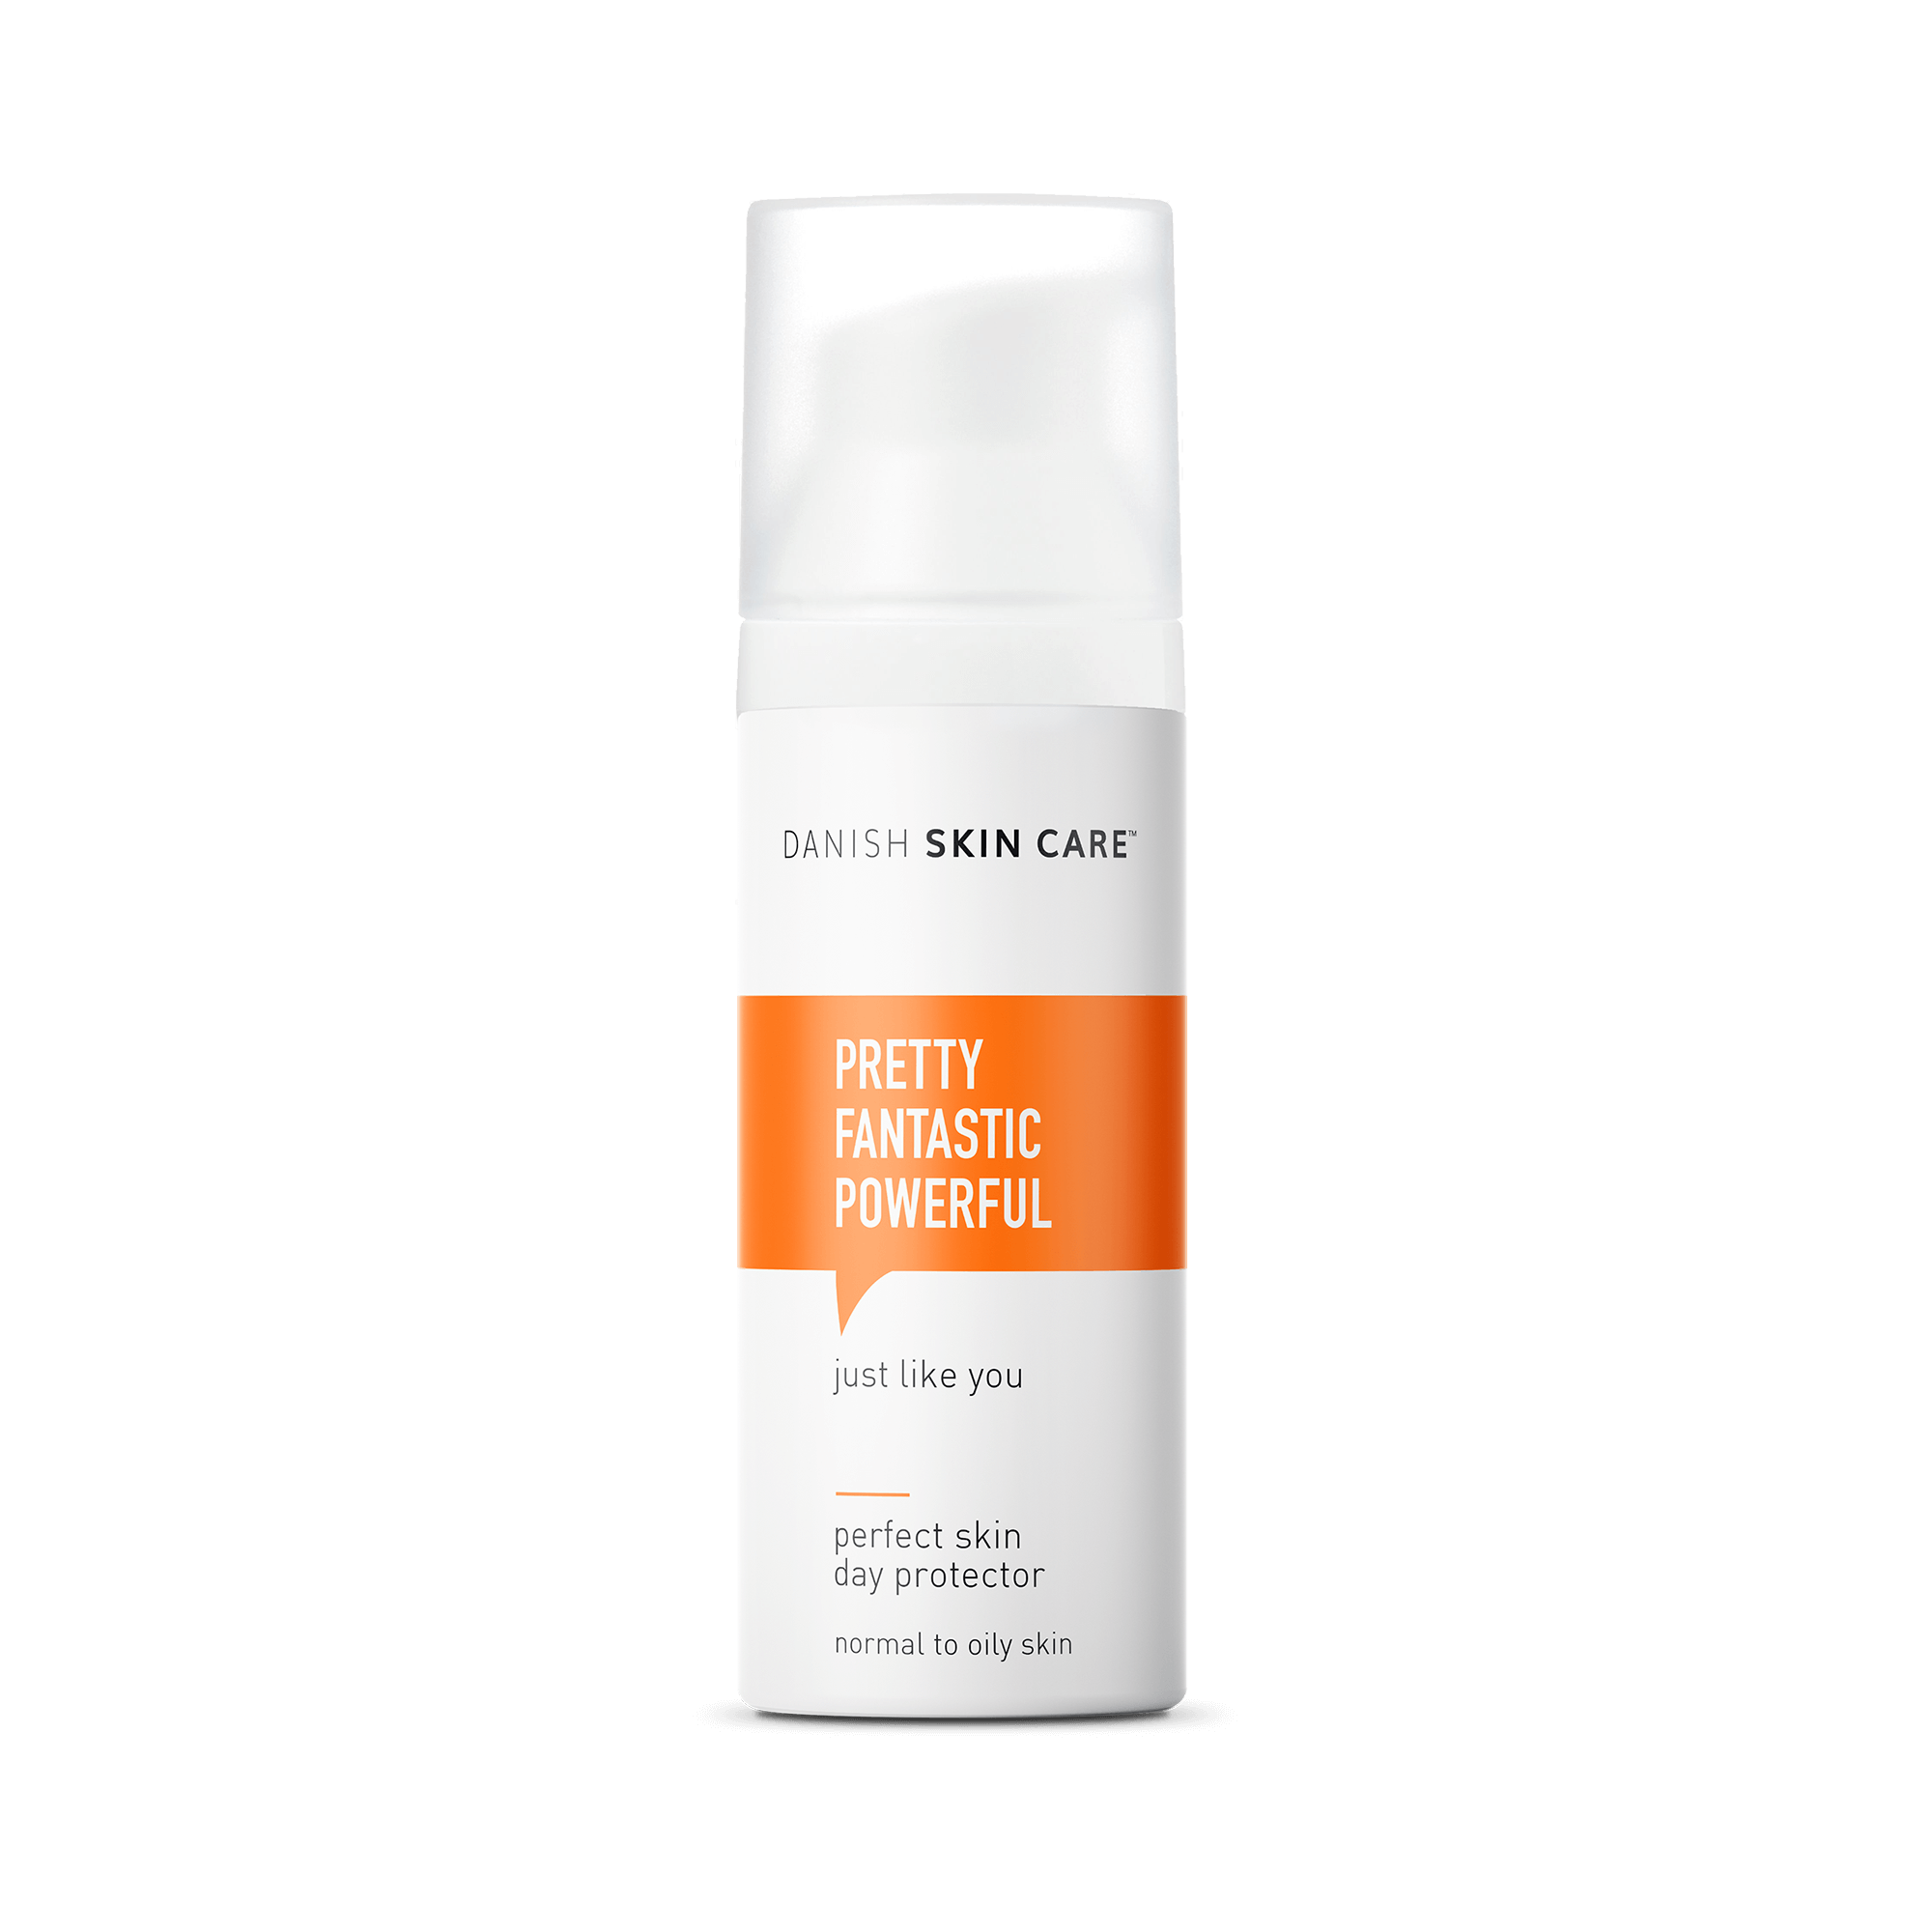 Danish Skin Cares Perfect Skin Day Protector for normal to oily skin